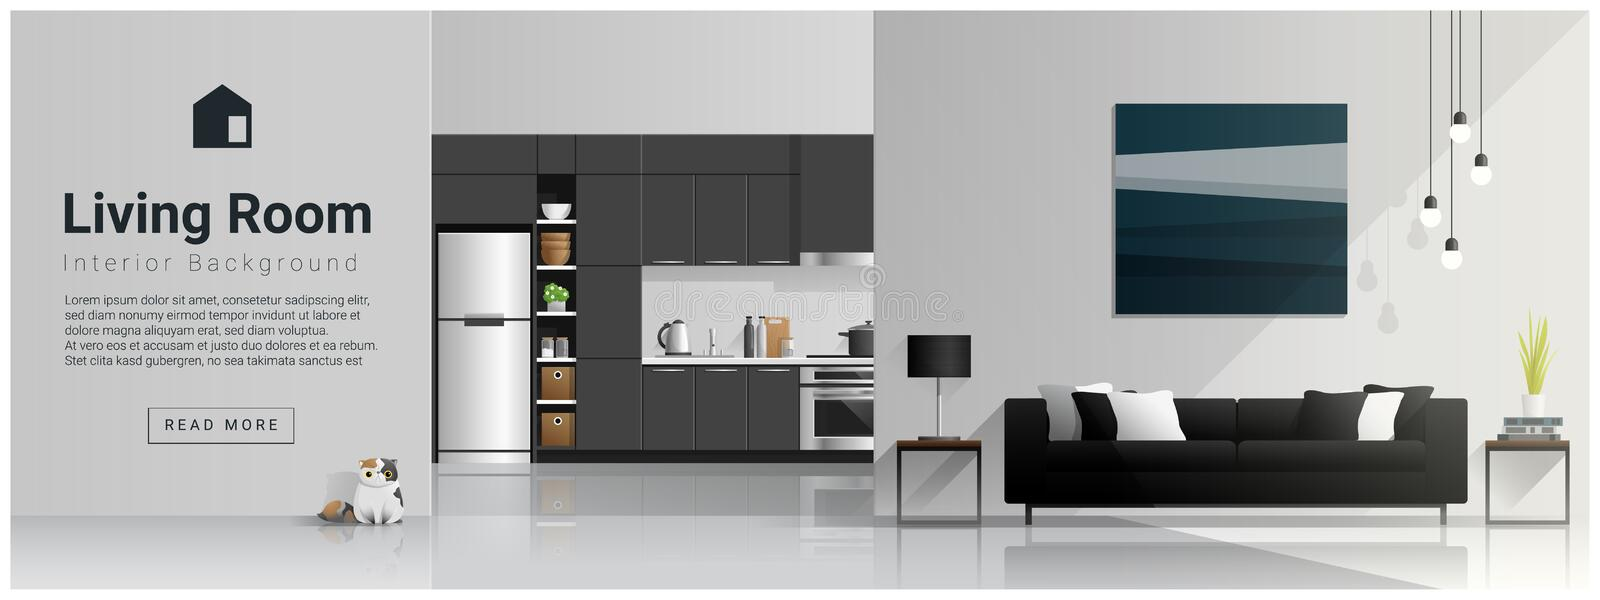 Interior design with modern living room and kitchen background stock illustration